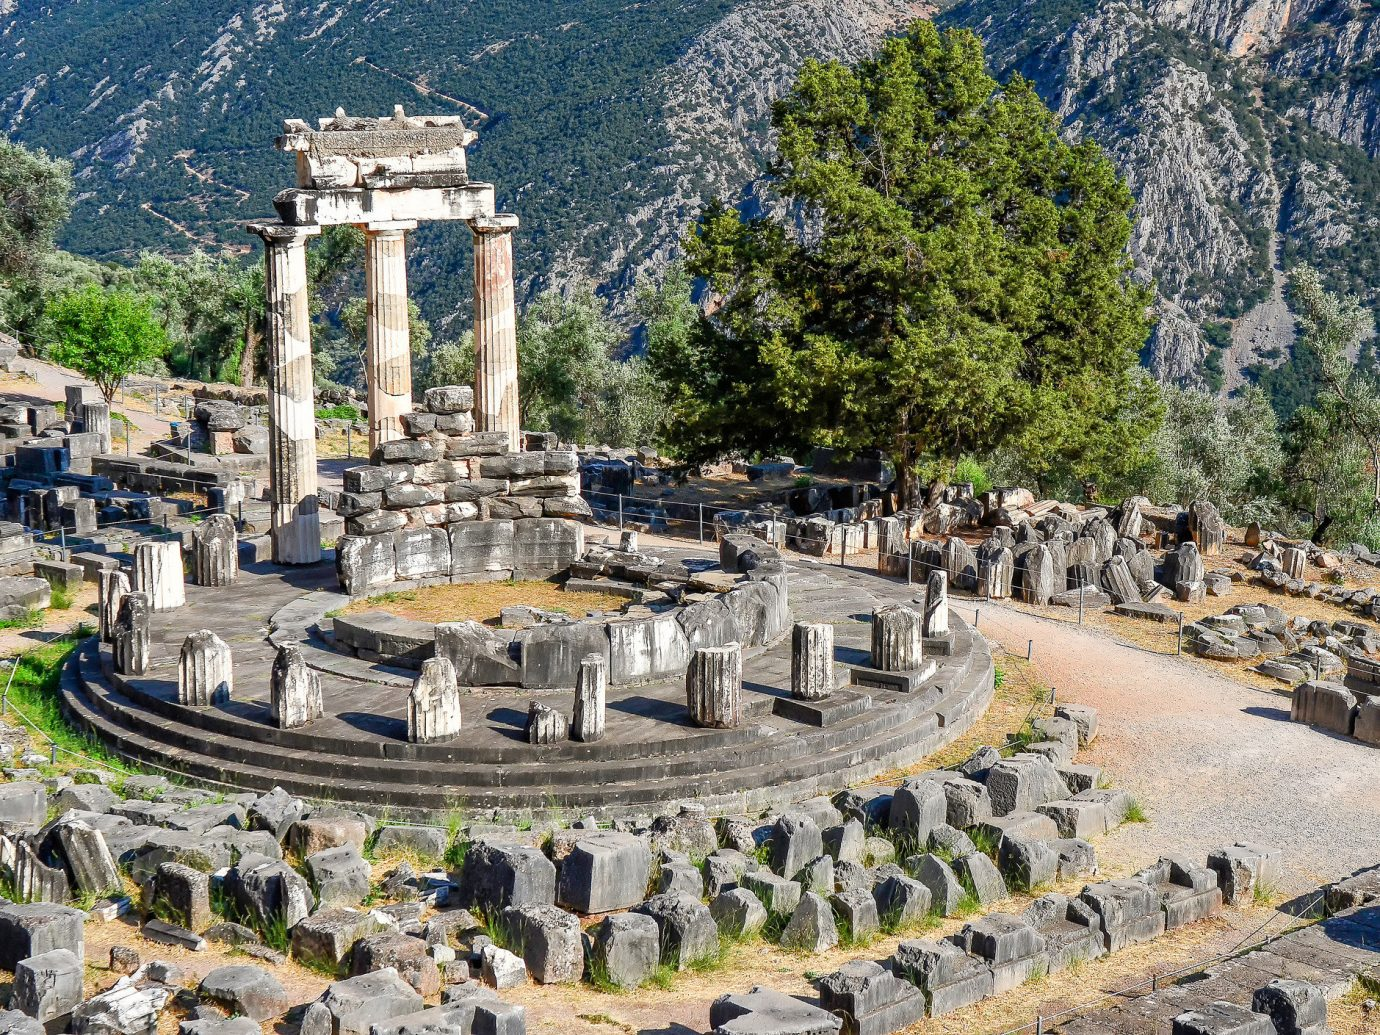 Arts + Culture Landmarks Trip Ideas tree outdoor mountain ground historic site ancient history landmark archaeological site Ruins tourist attraction unesco world heritage site ancient rome tourism ruin old stone